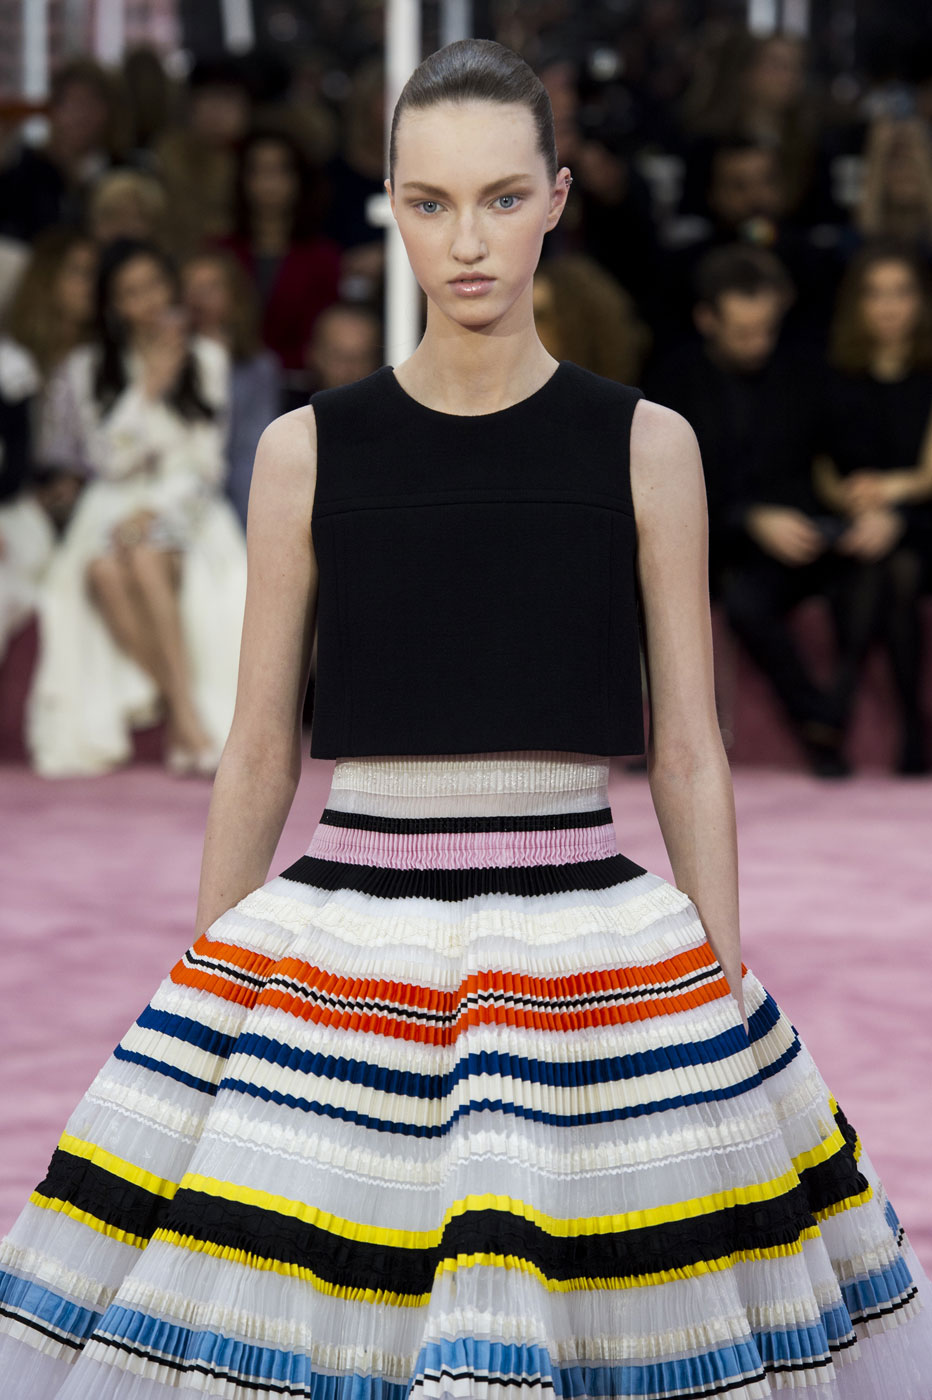 Christian-Dior-fashion-runway-show-haute-couture-paris-spring-summer-2015-the-impression-111